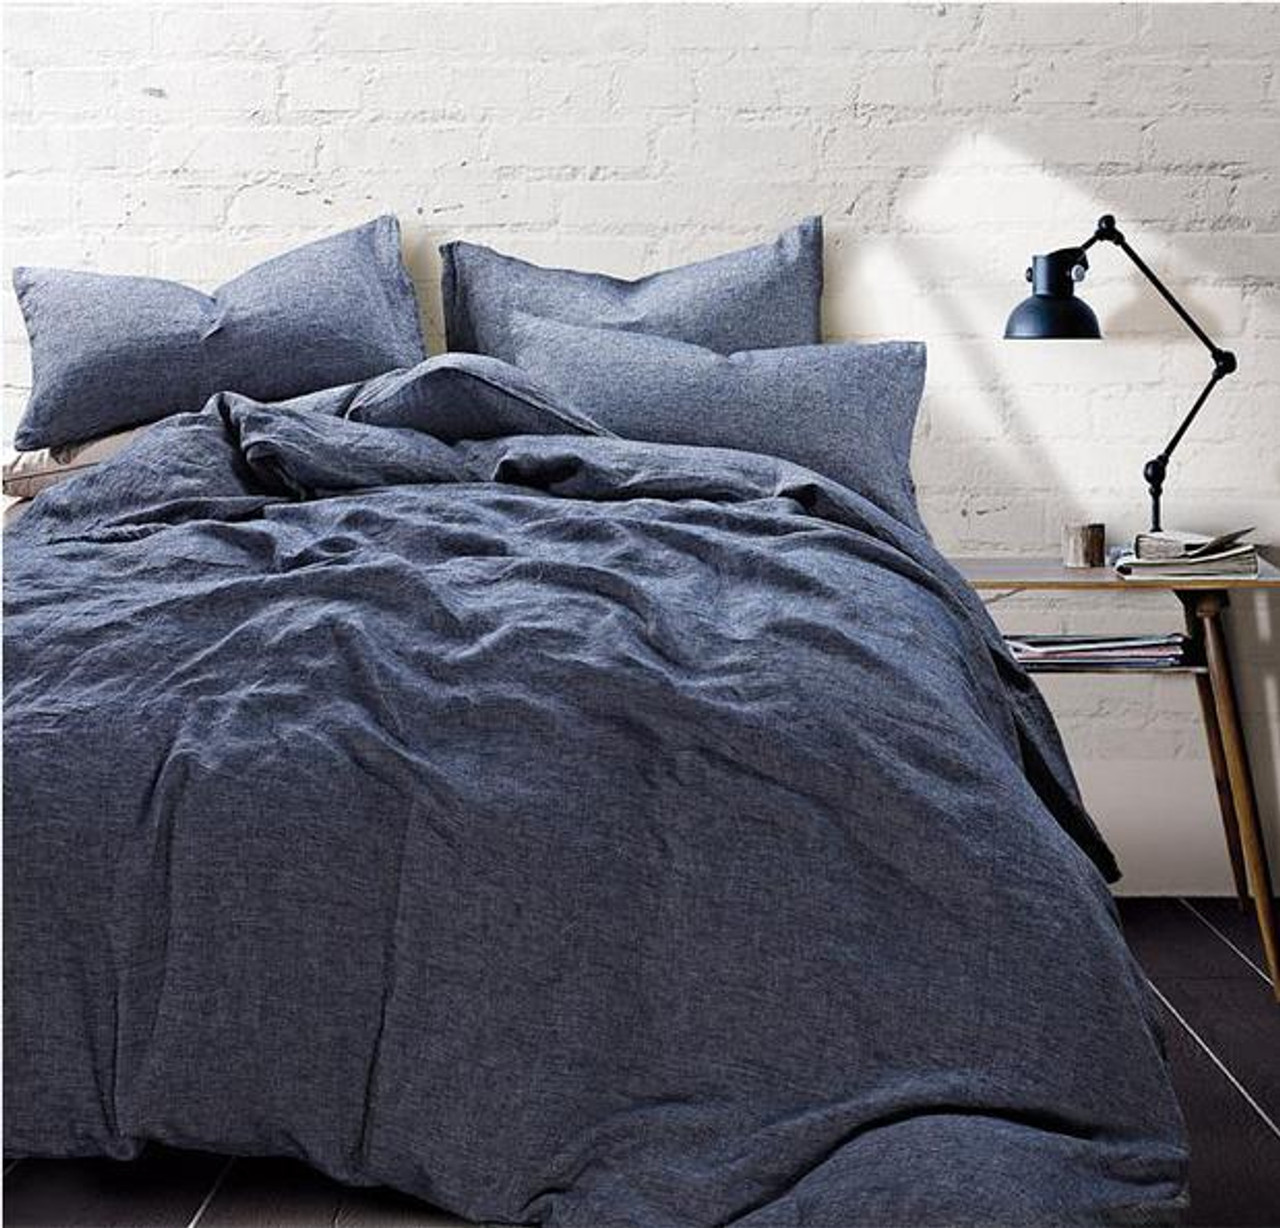 Chambray Denim Duvet Cover Natural Linen Chambray Bedding Custom Size Queen King Calif King Twin